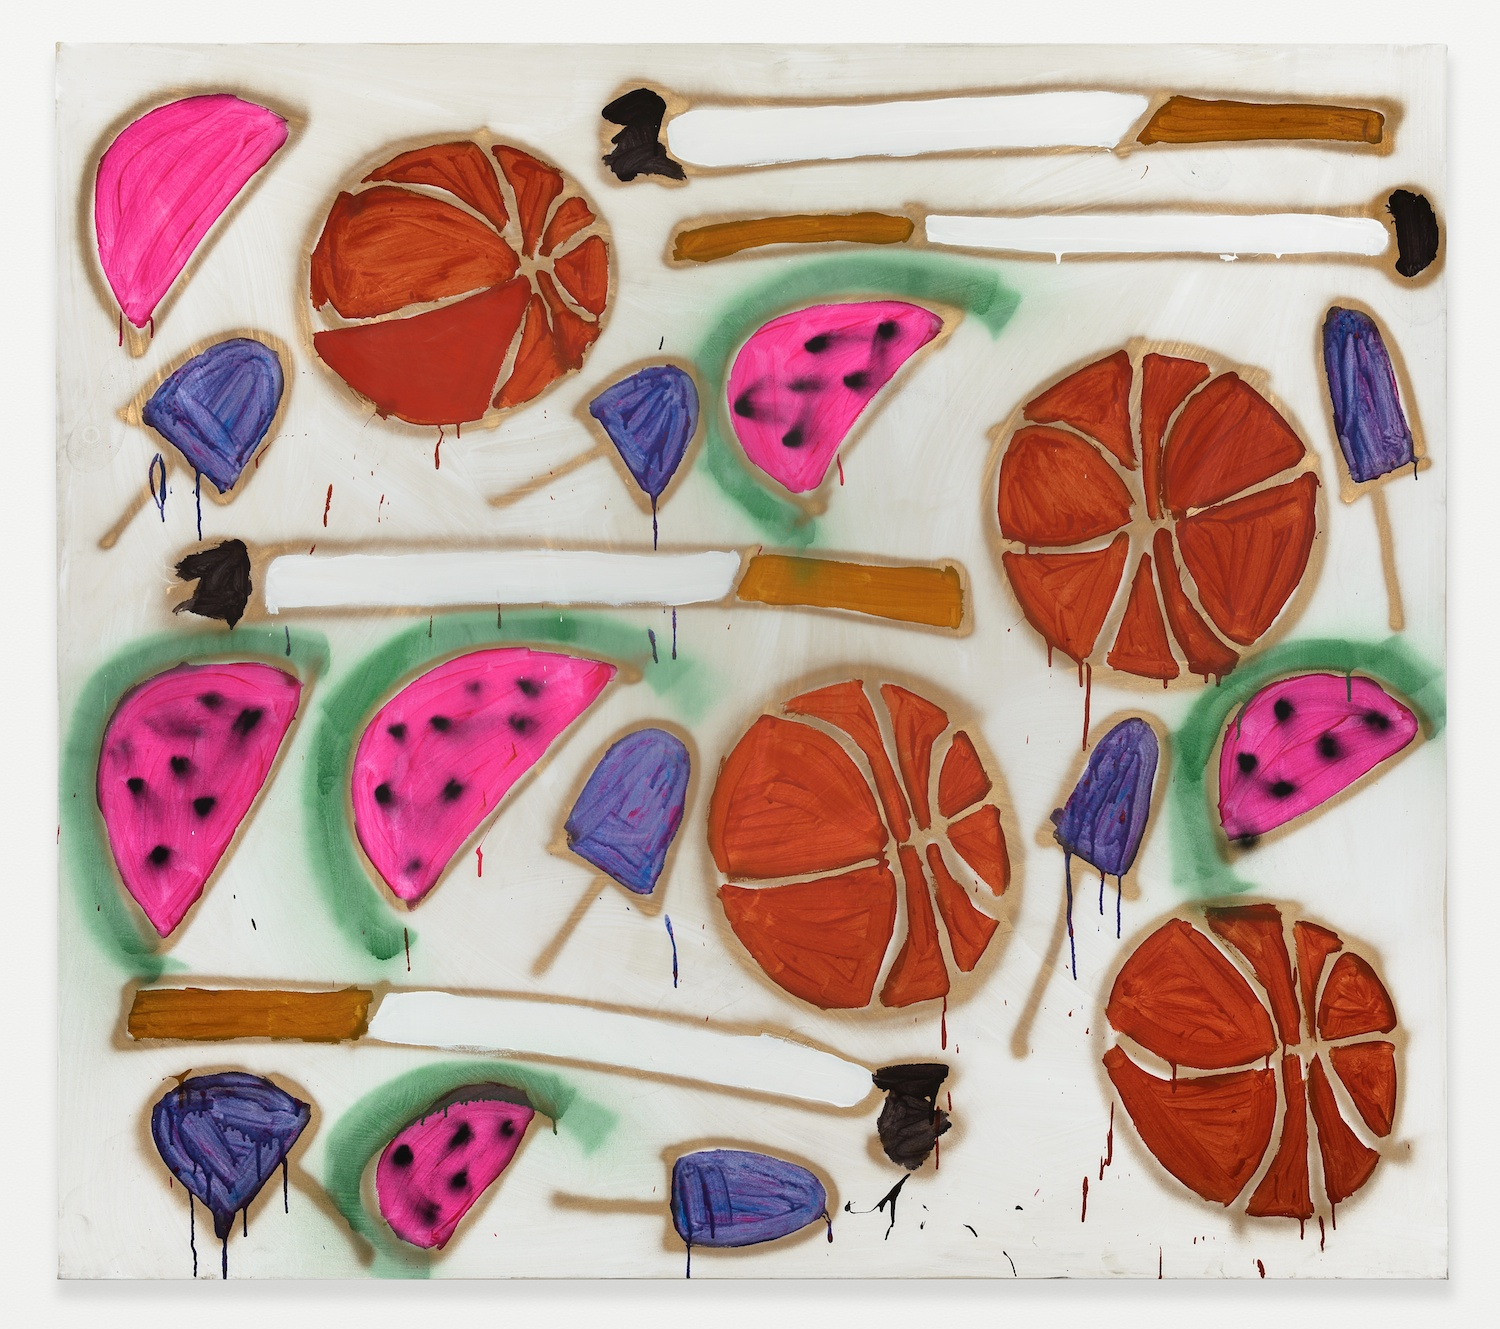 Katherine Bernhardt  Watermelon, Basketballs, Popsicles, and Cigs  2014 Acrylic and spray paint on canvas 72h x 78w in KBern001